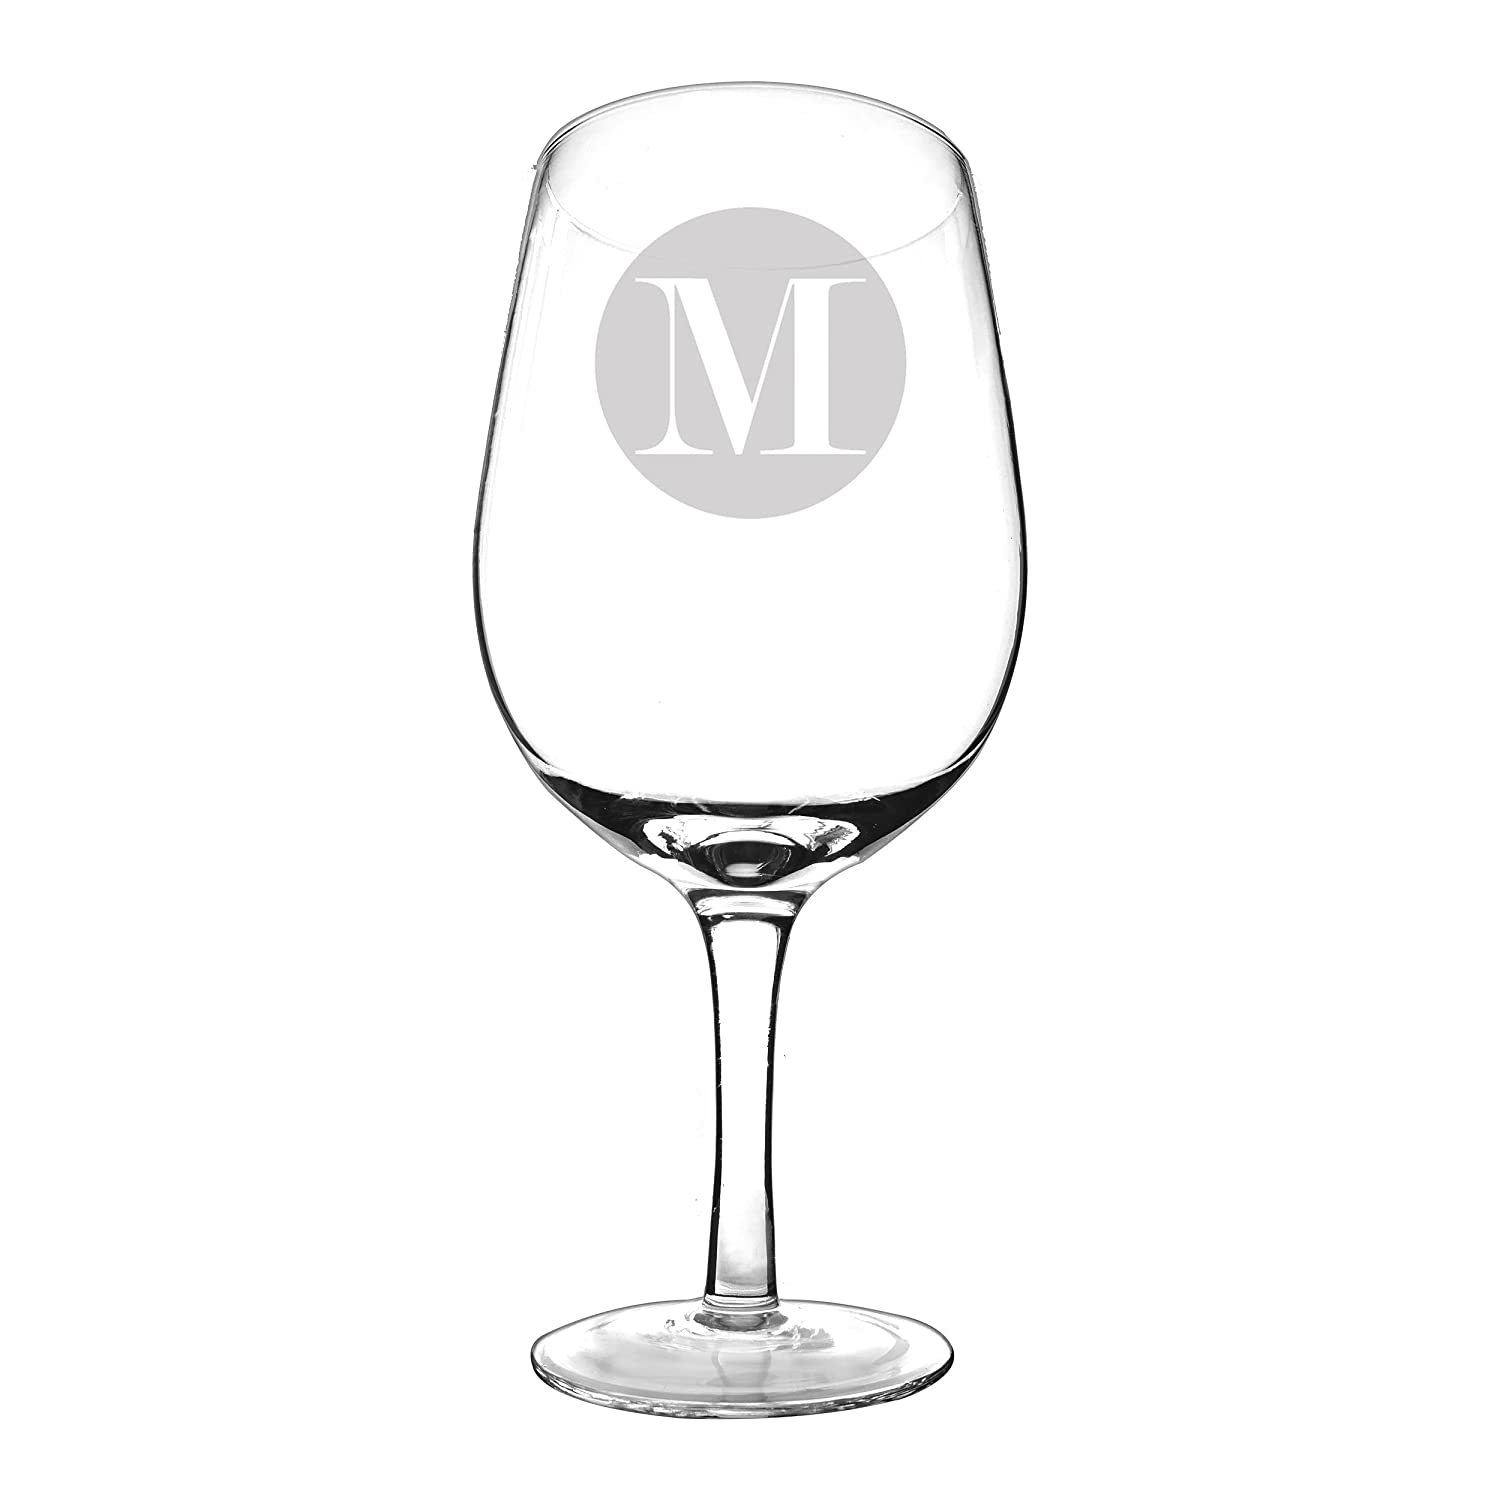 Cathy's Concepts Personalized XL Wine Glass, Letter S